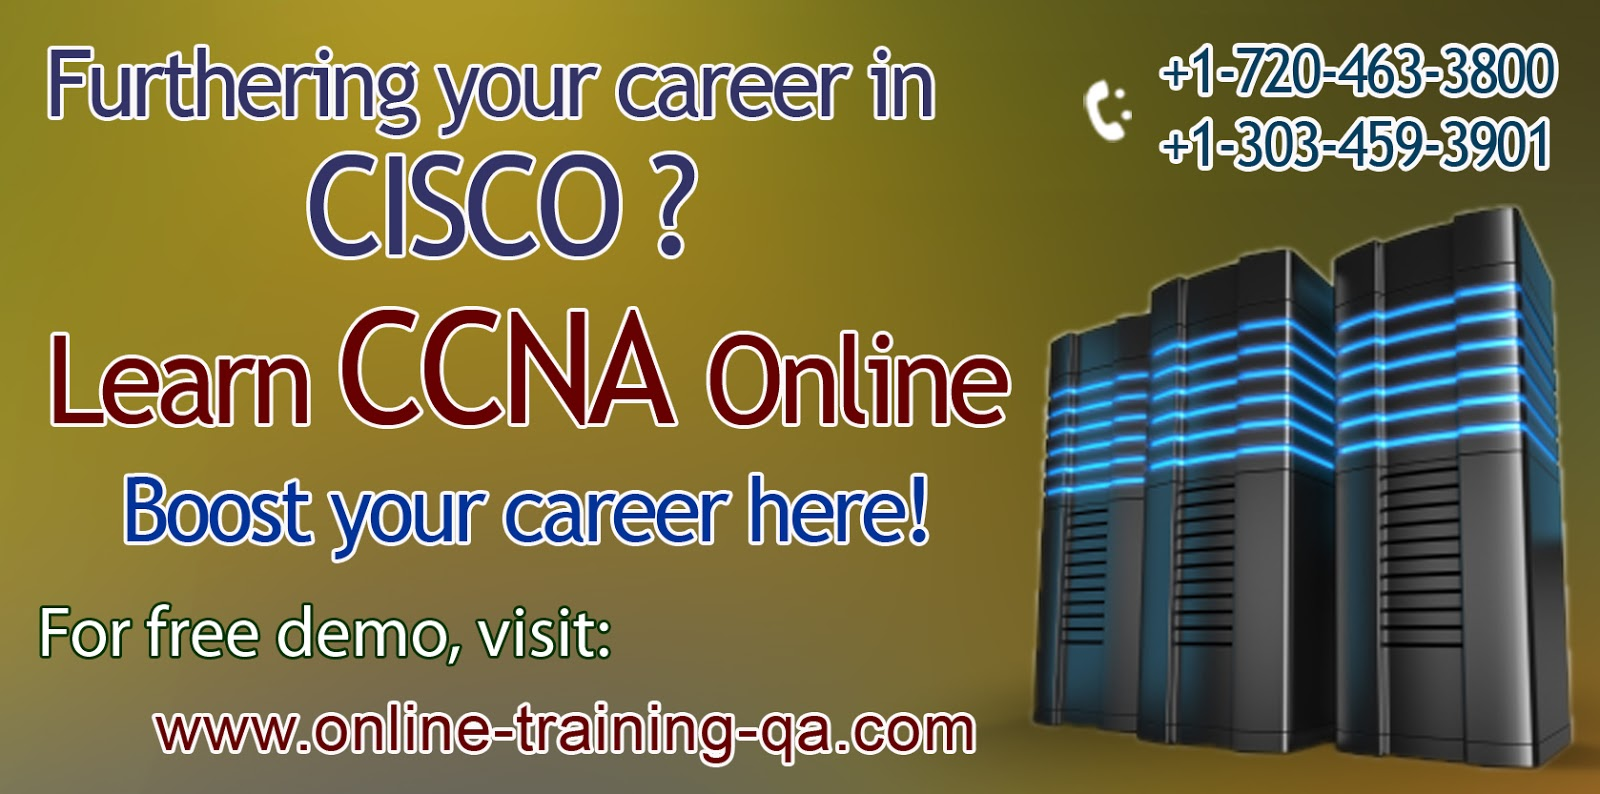 Ccna training this cisco certification training courses includes training for ccent thus you attain ccent certification as well when you achieve ccna online training xflitez Gallery